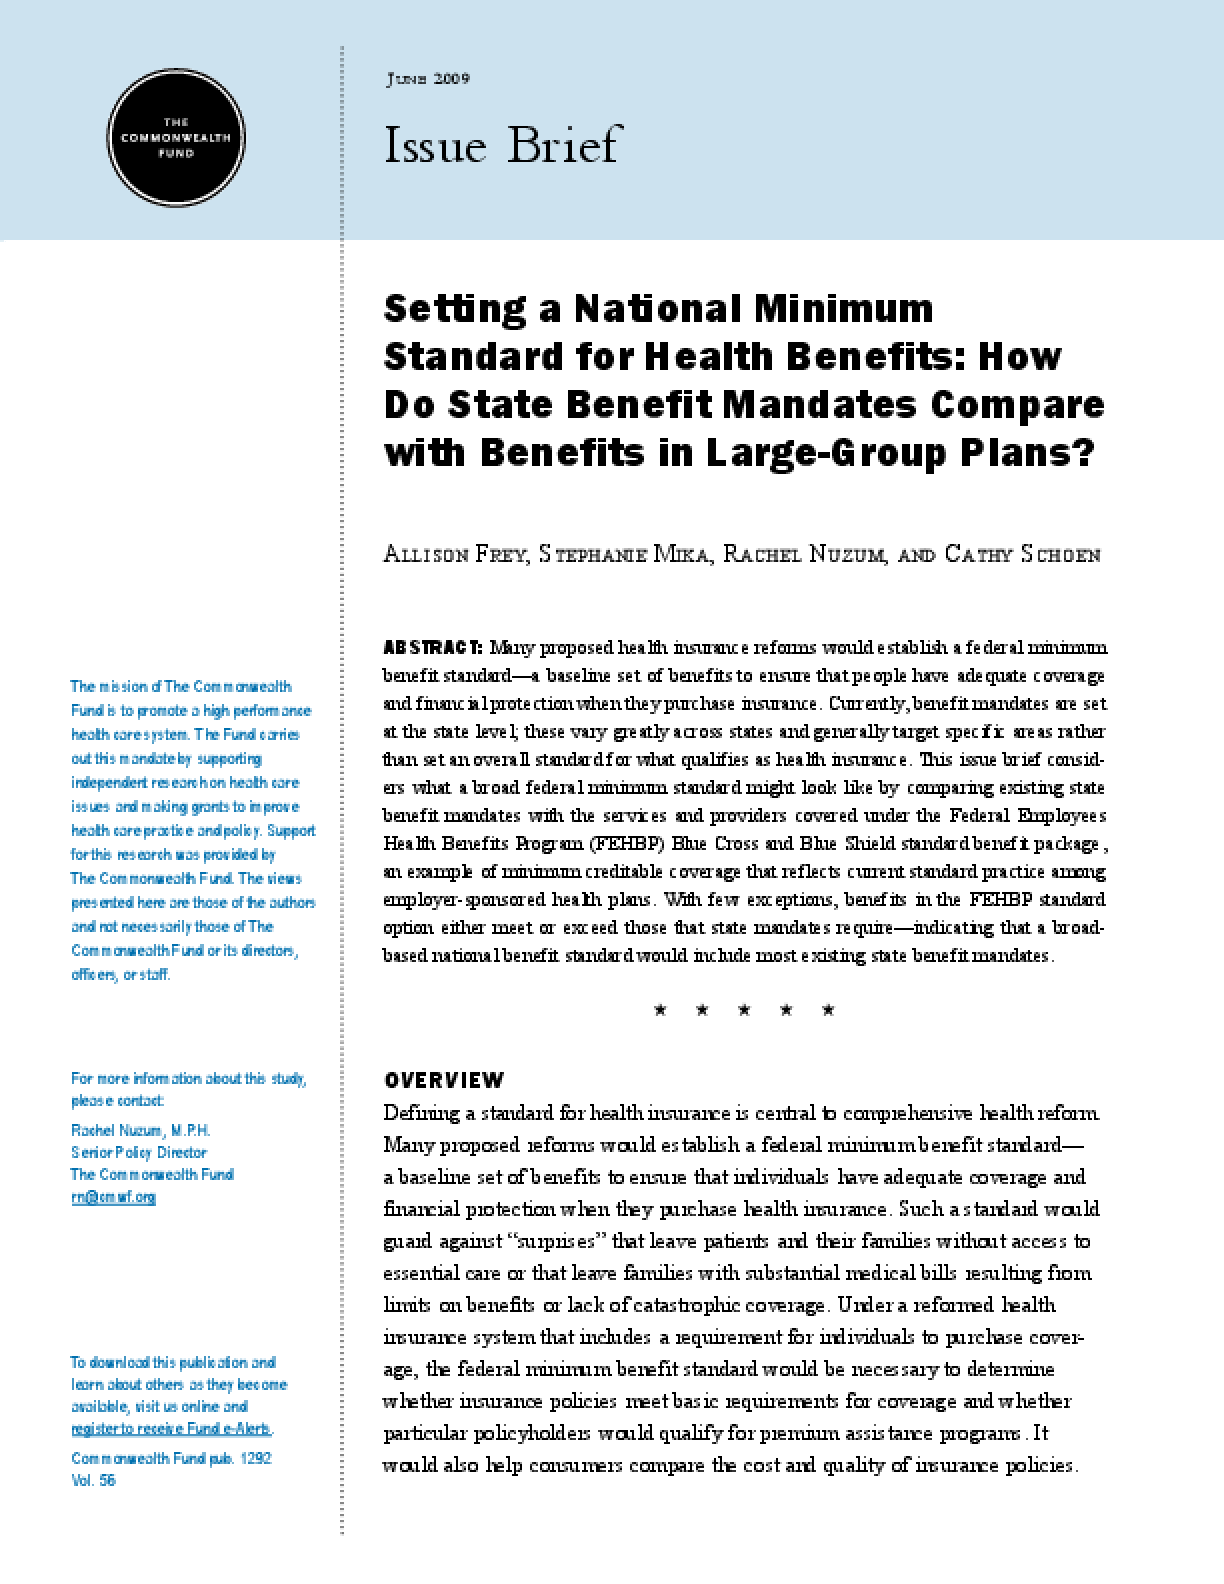 Setting a National Minimum Standard for Health Benefits: How Do State Benefit Mandates Compare With Benefits in Large-Group Plans?